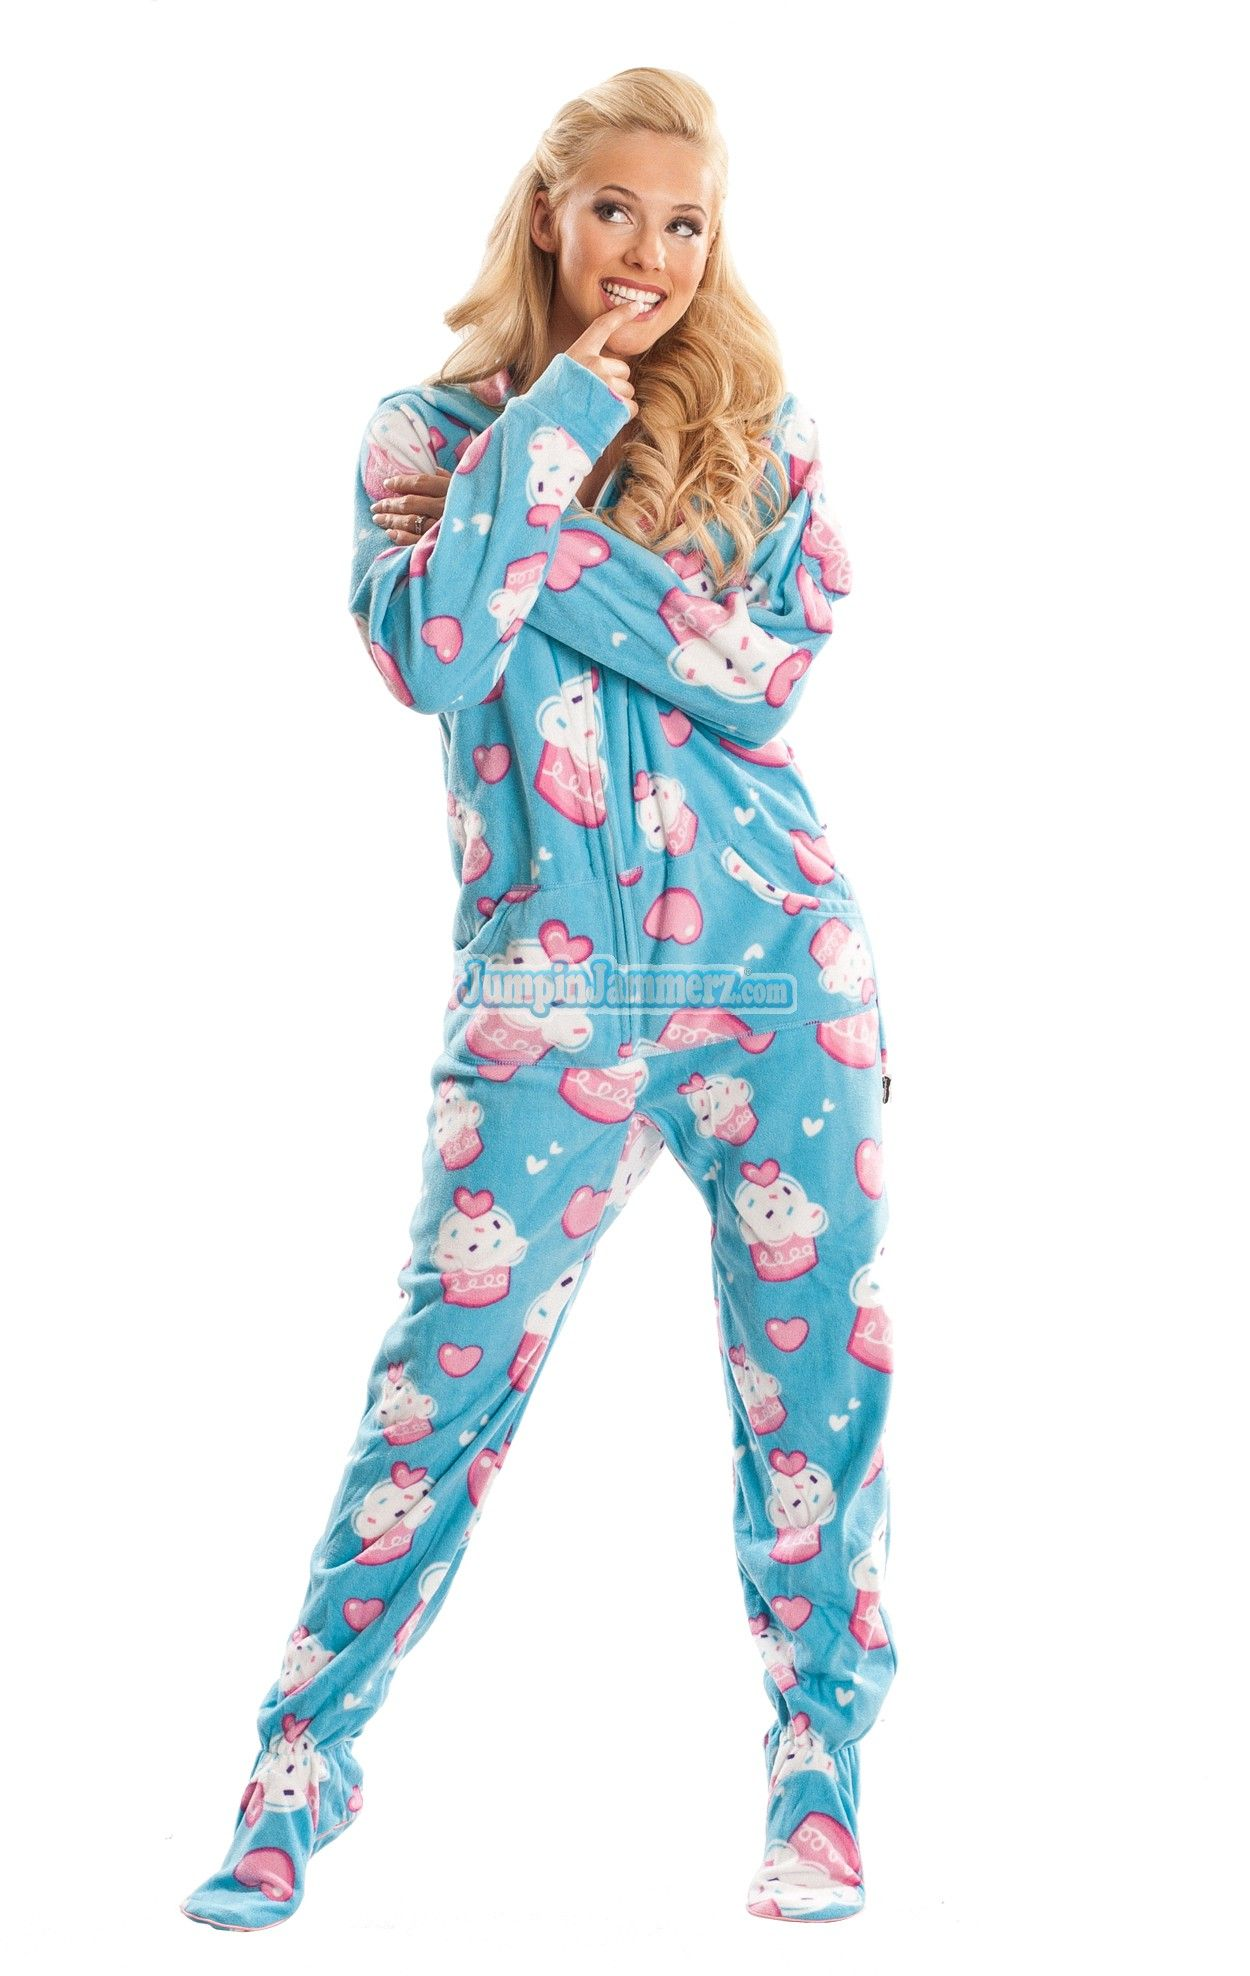 Cup Cakes - Hooded Footed Pajamas - Pajamas Footie PJs Onesies One ...